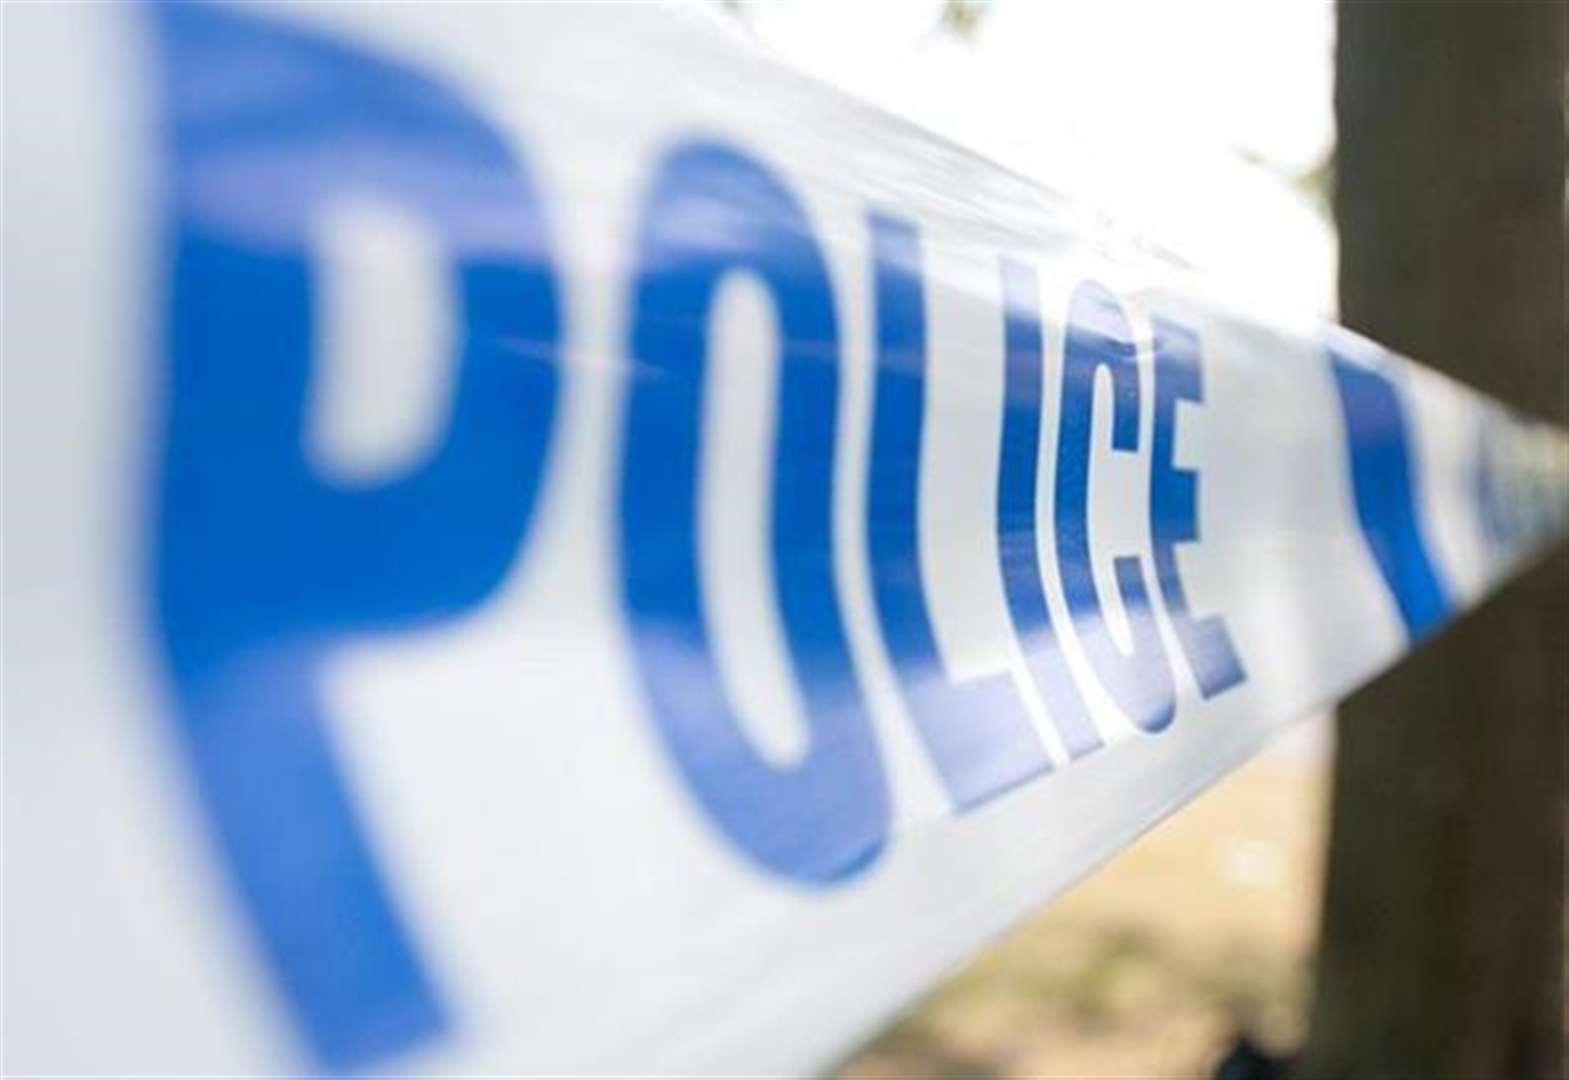 Man impersonates police officer in attempted burglary in Lavenham